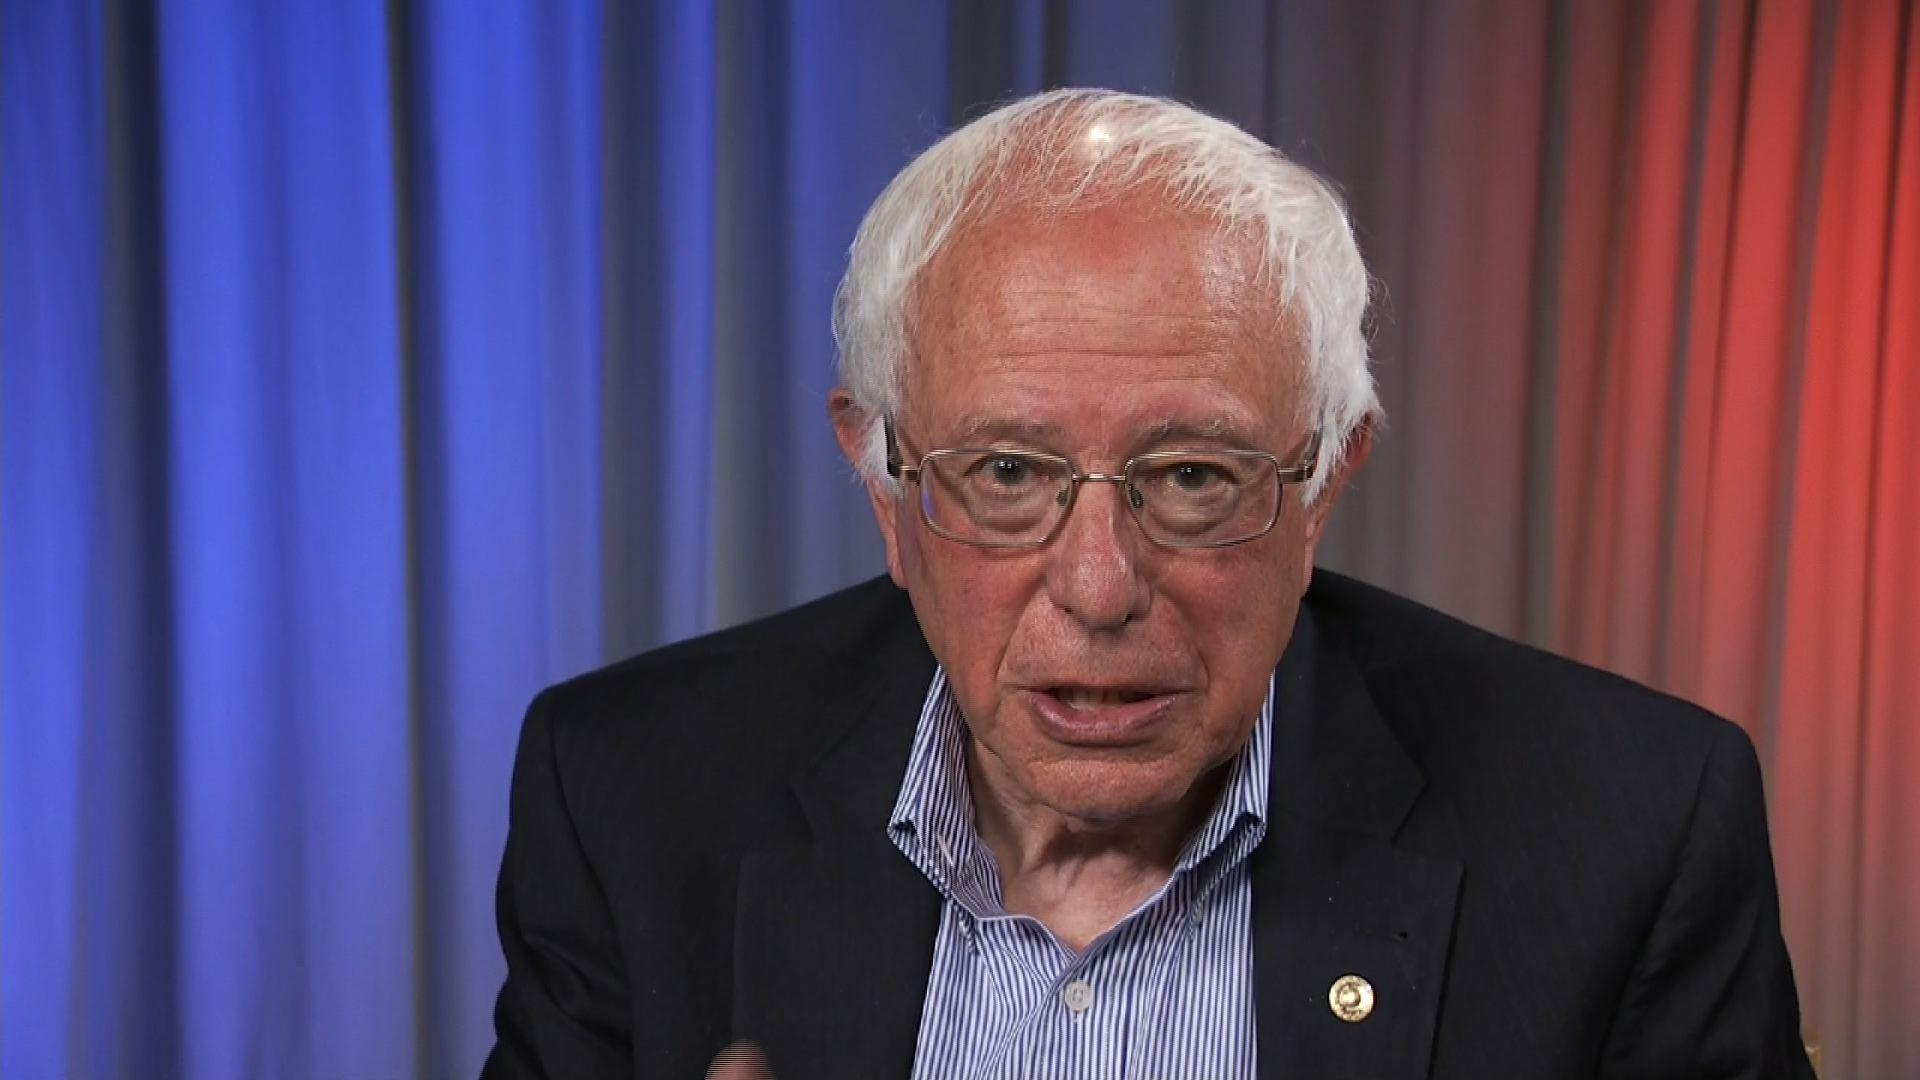 Sanders Wants Larry David To Keep Job On SNL